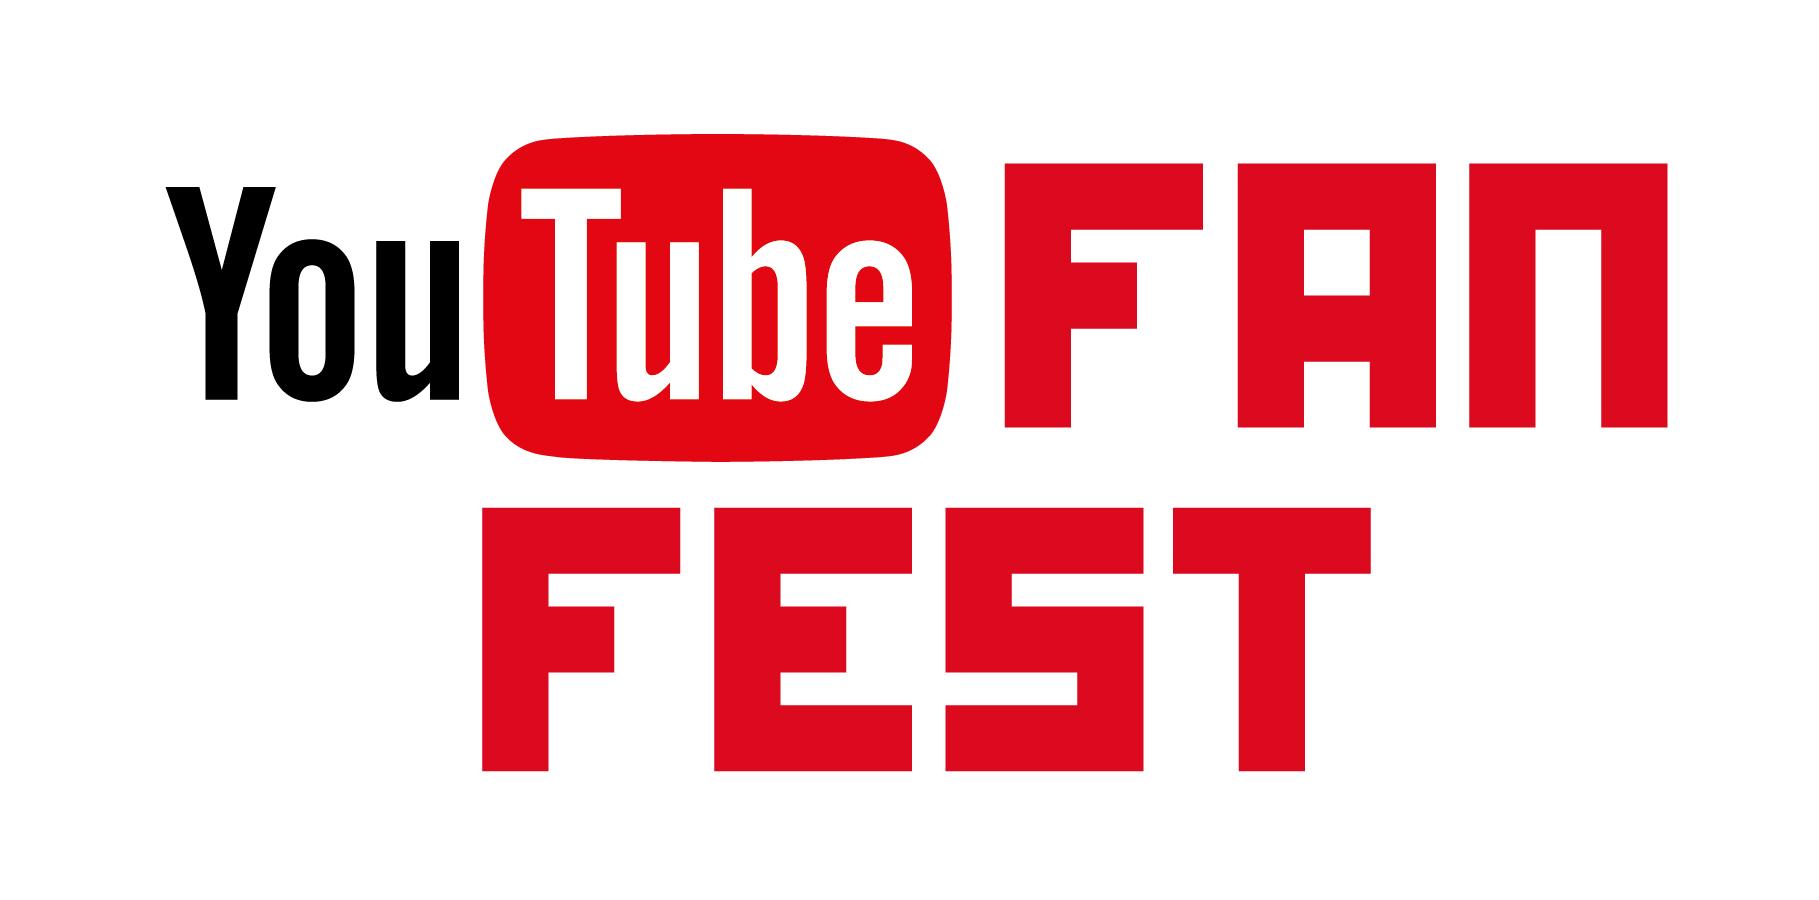 Youtube Fanfest Set To Make Its North American Debut In Toronto On